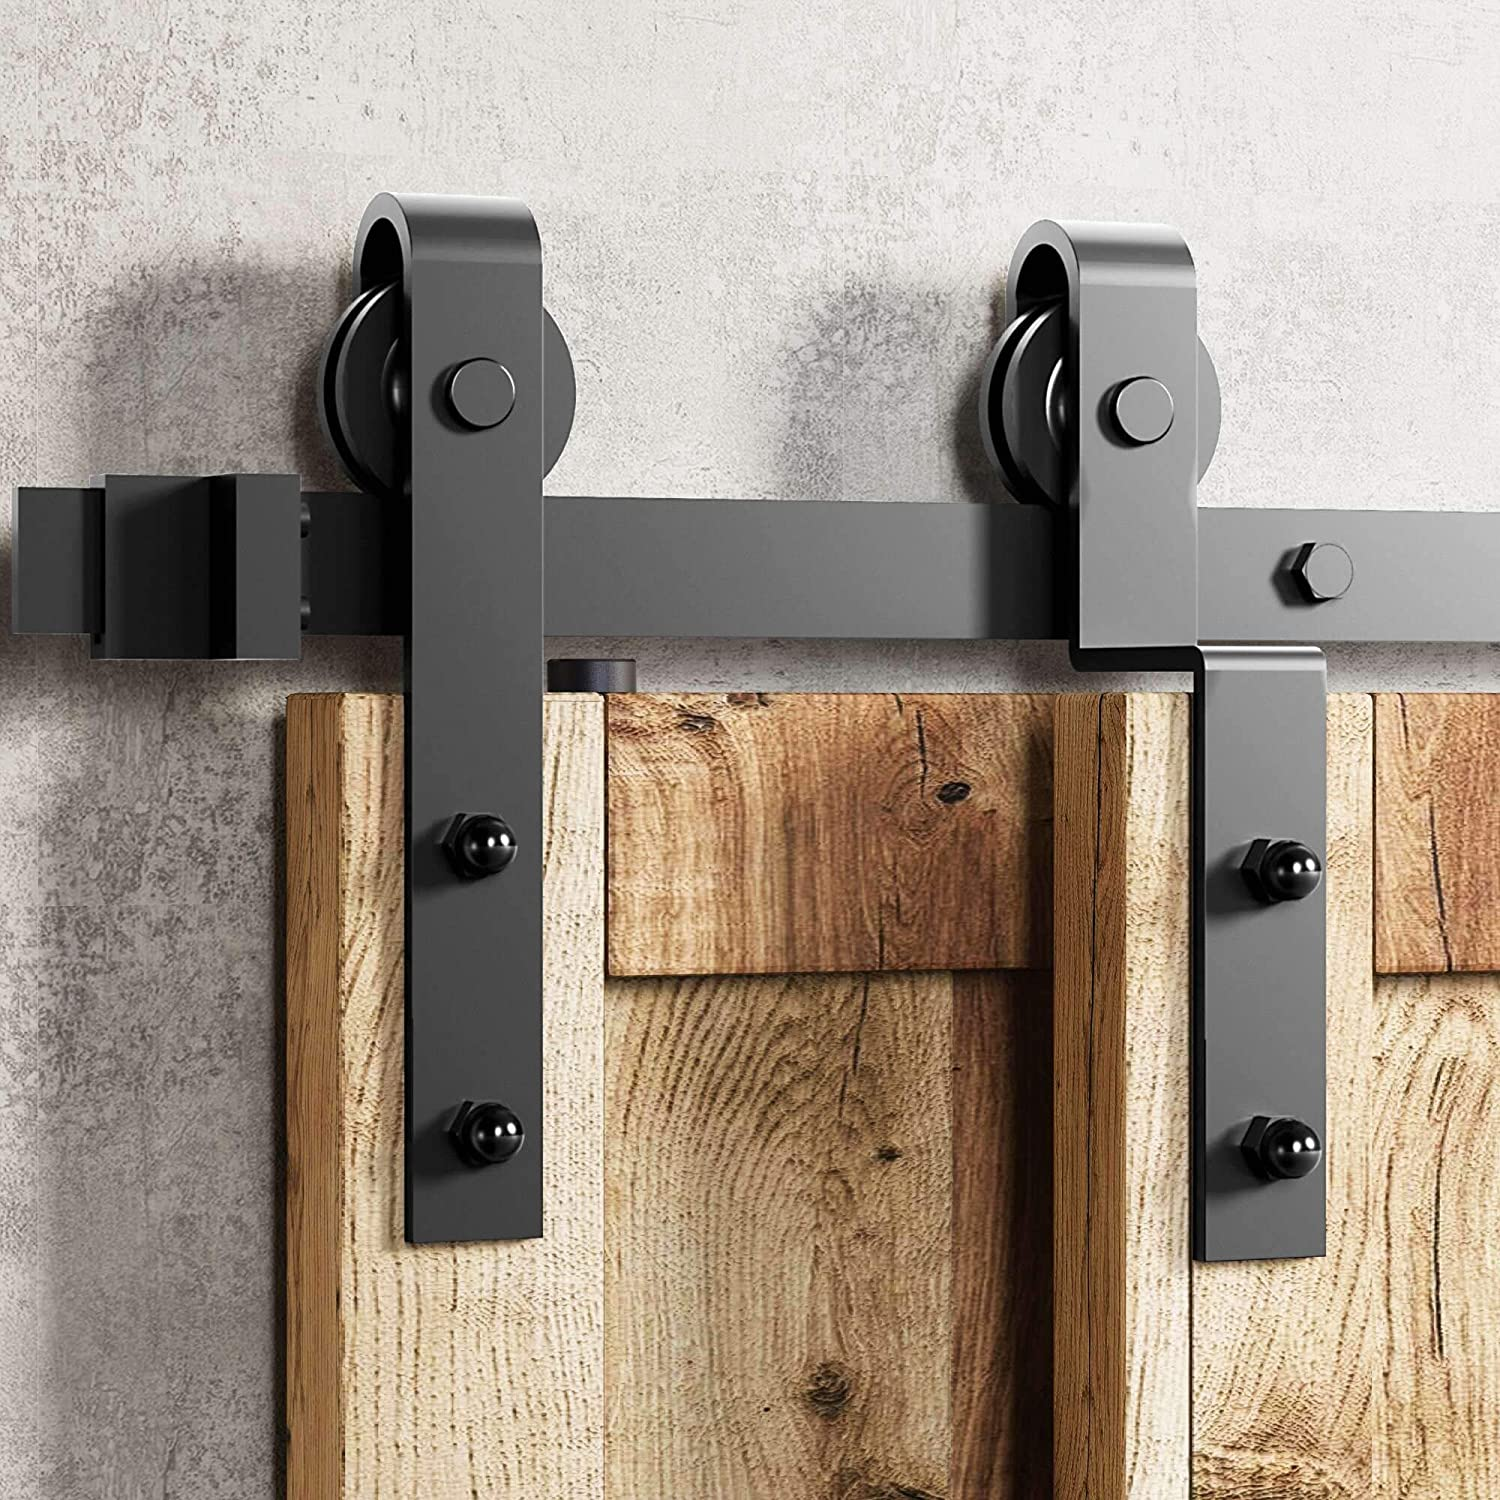 Homacer Black Rustic Single 2021 Some reservation autumn and winter new Track Sliding Bypass Hardw Door Barn